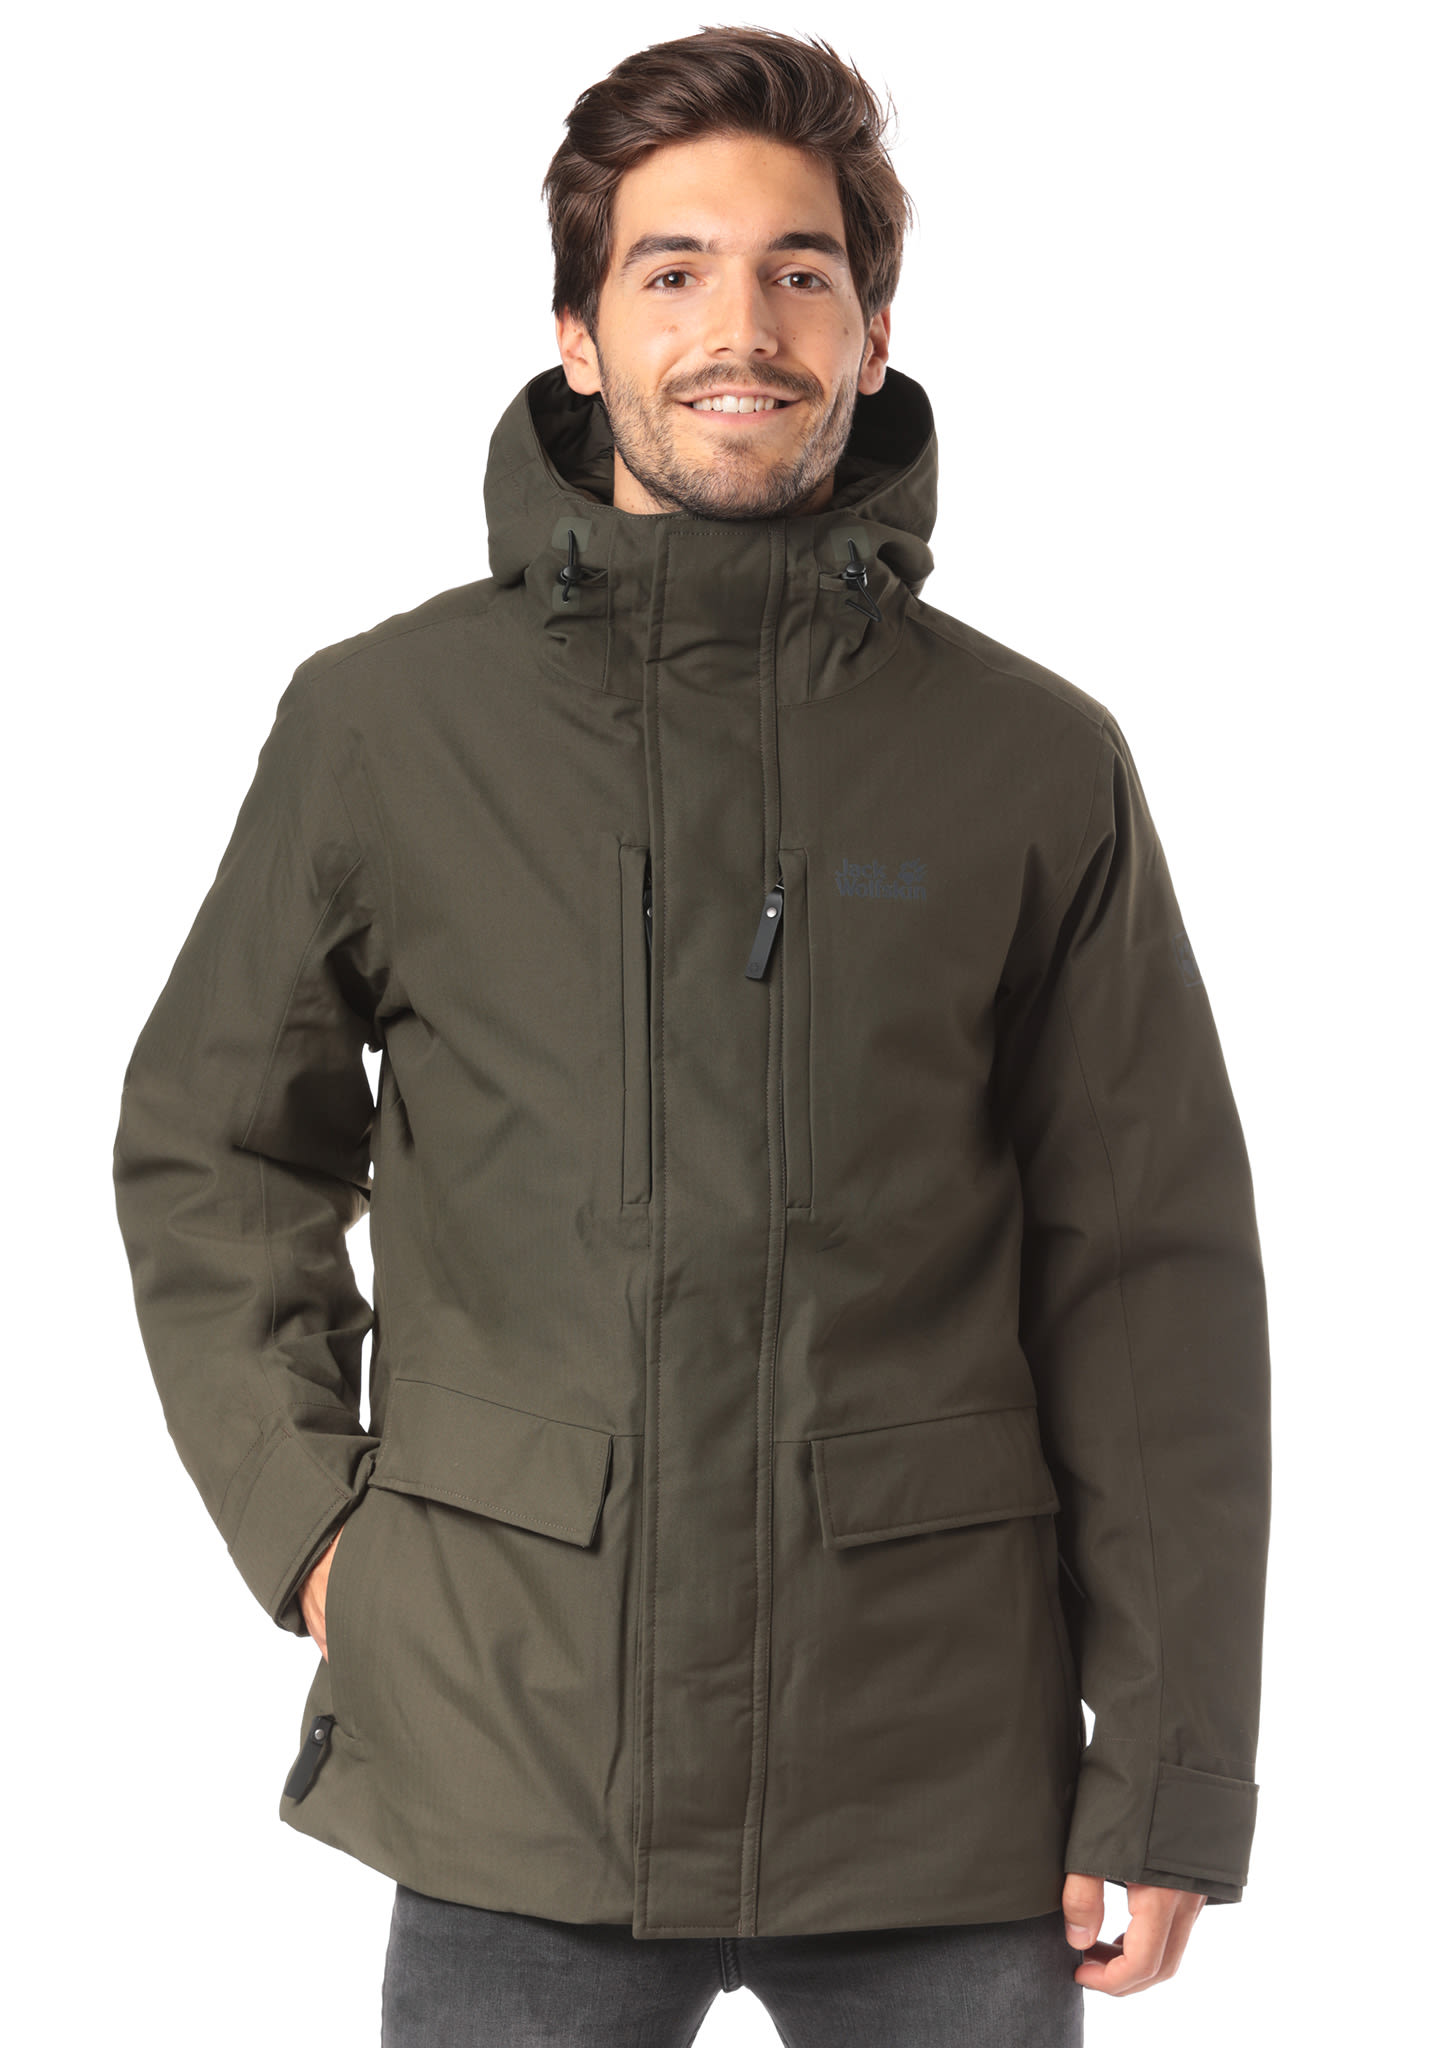 huge discount e8ee6 75fbc Jack Wolfskin West Coast - Giacca outdoor per Uomo - Verde